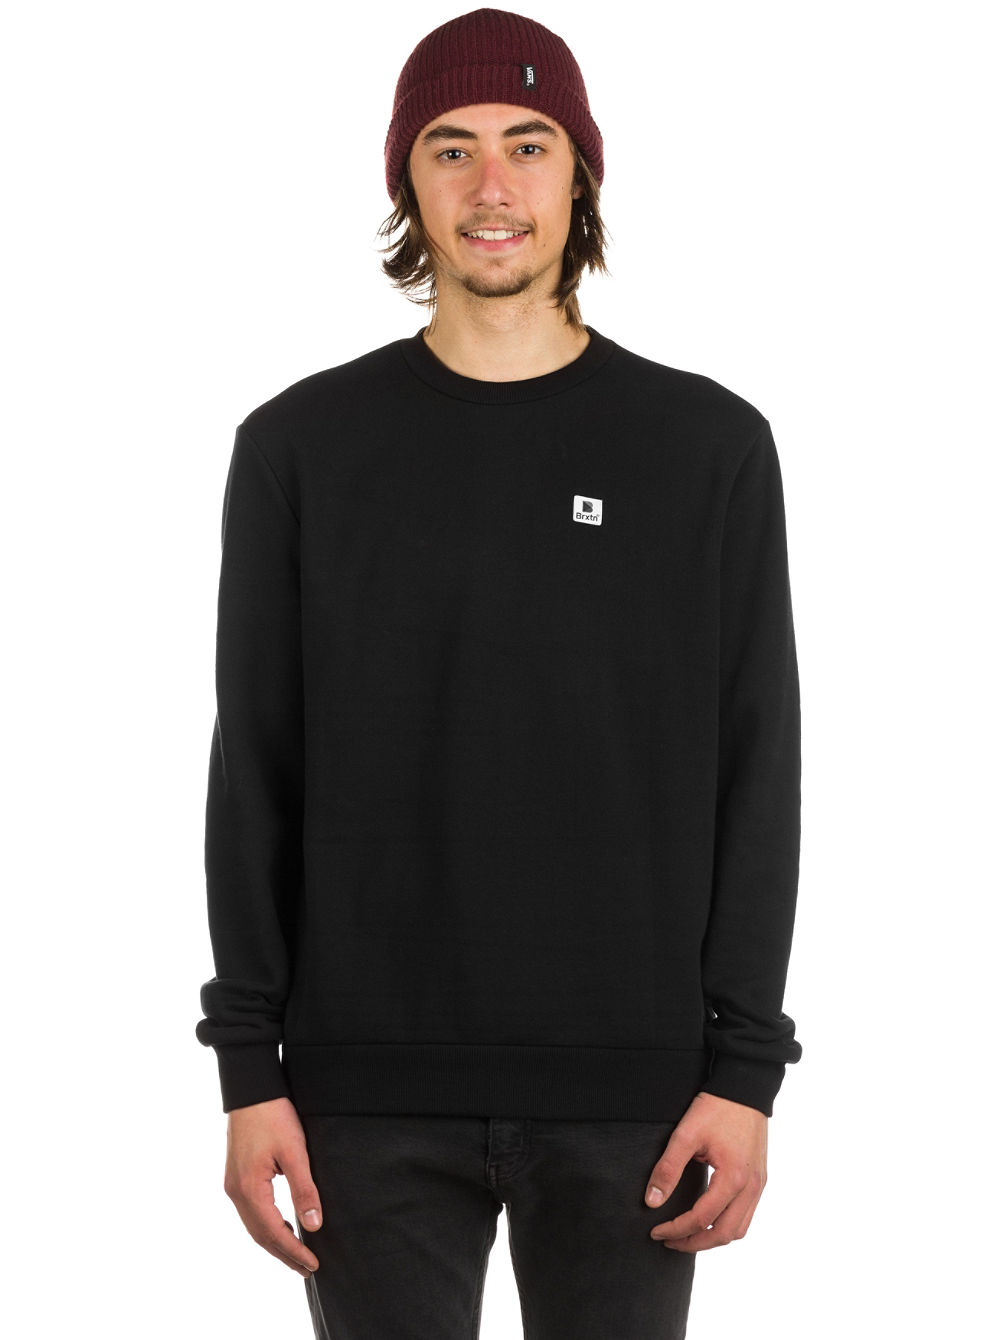 Stowell Crew Fleece Sweater